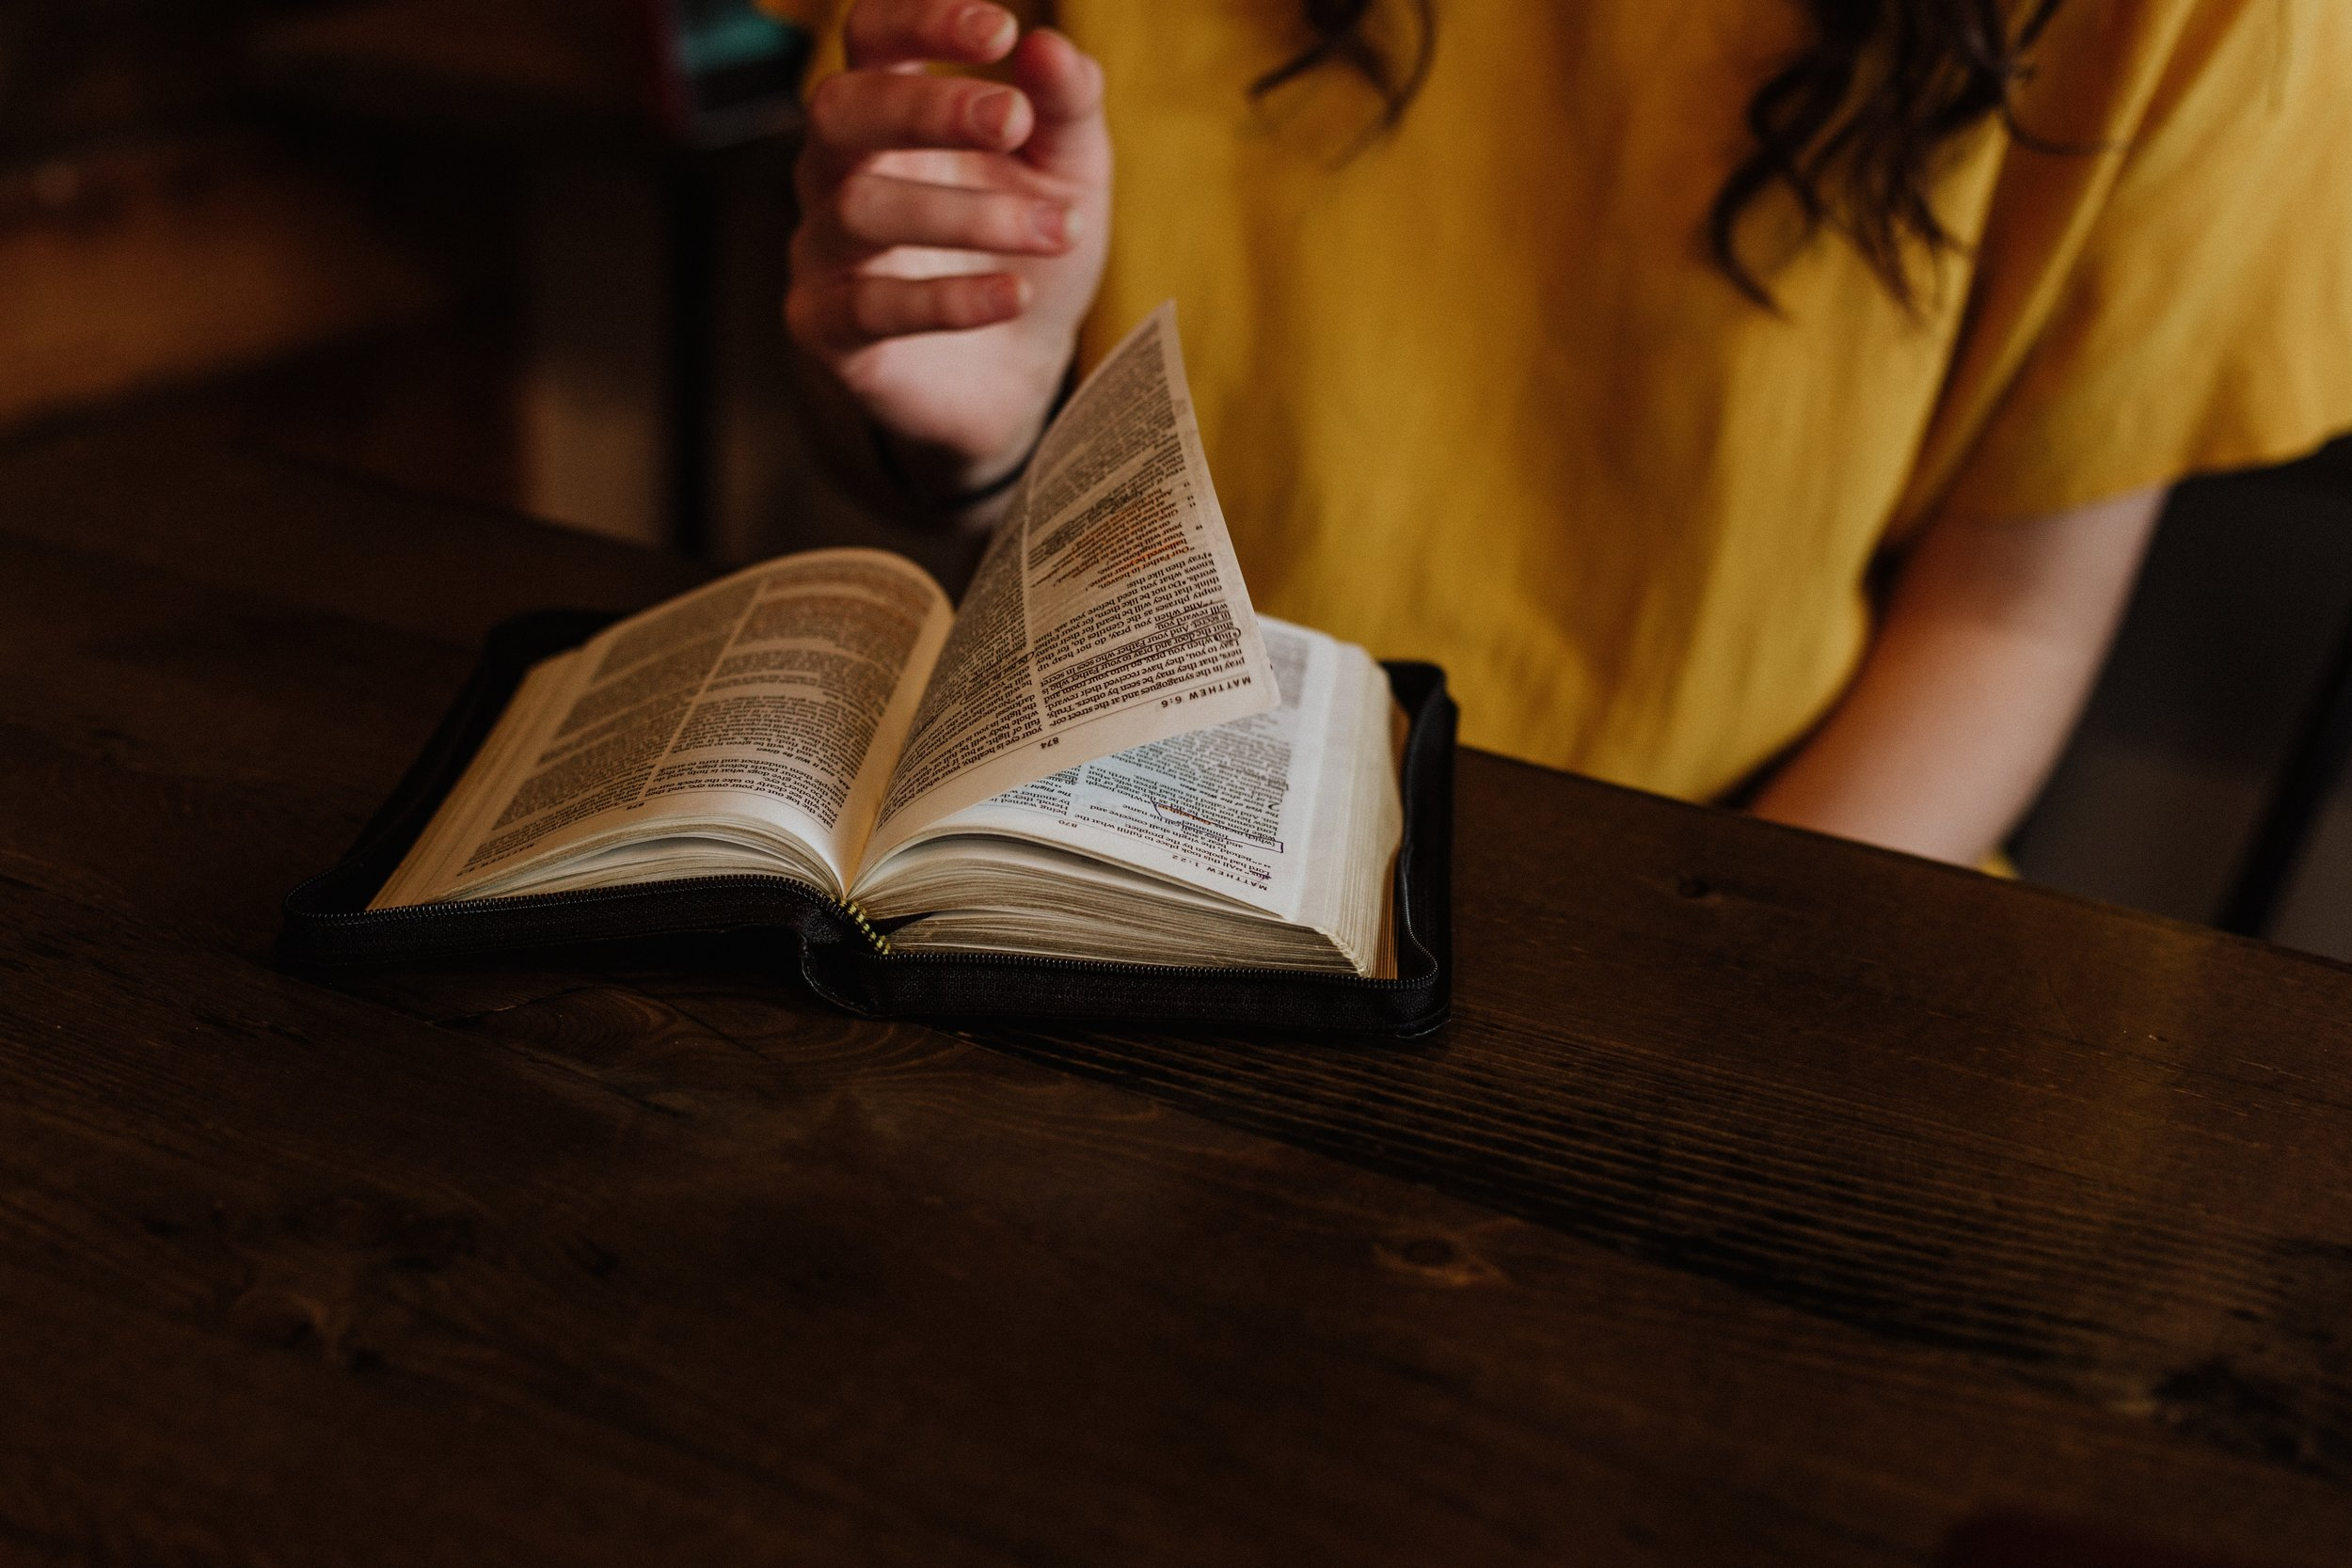 FOLLOW THE READING PLAN - Take time to read from the Bible and reflect on God's Word with a 10-day reading plan.